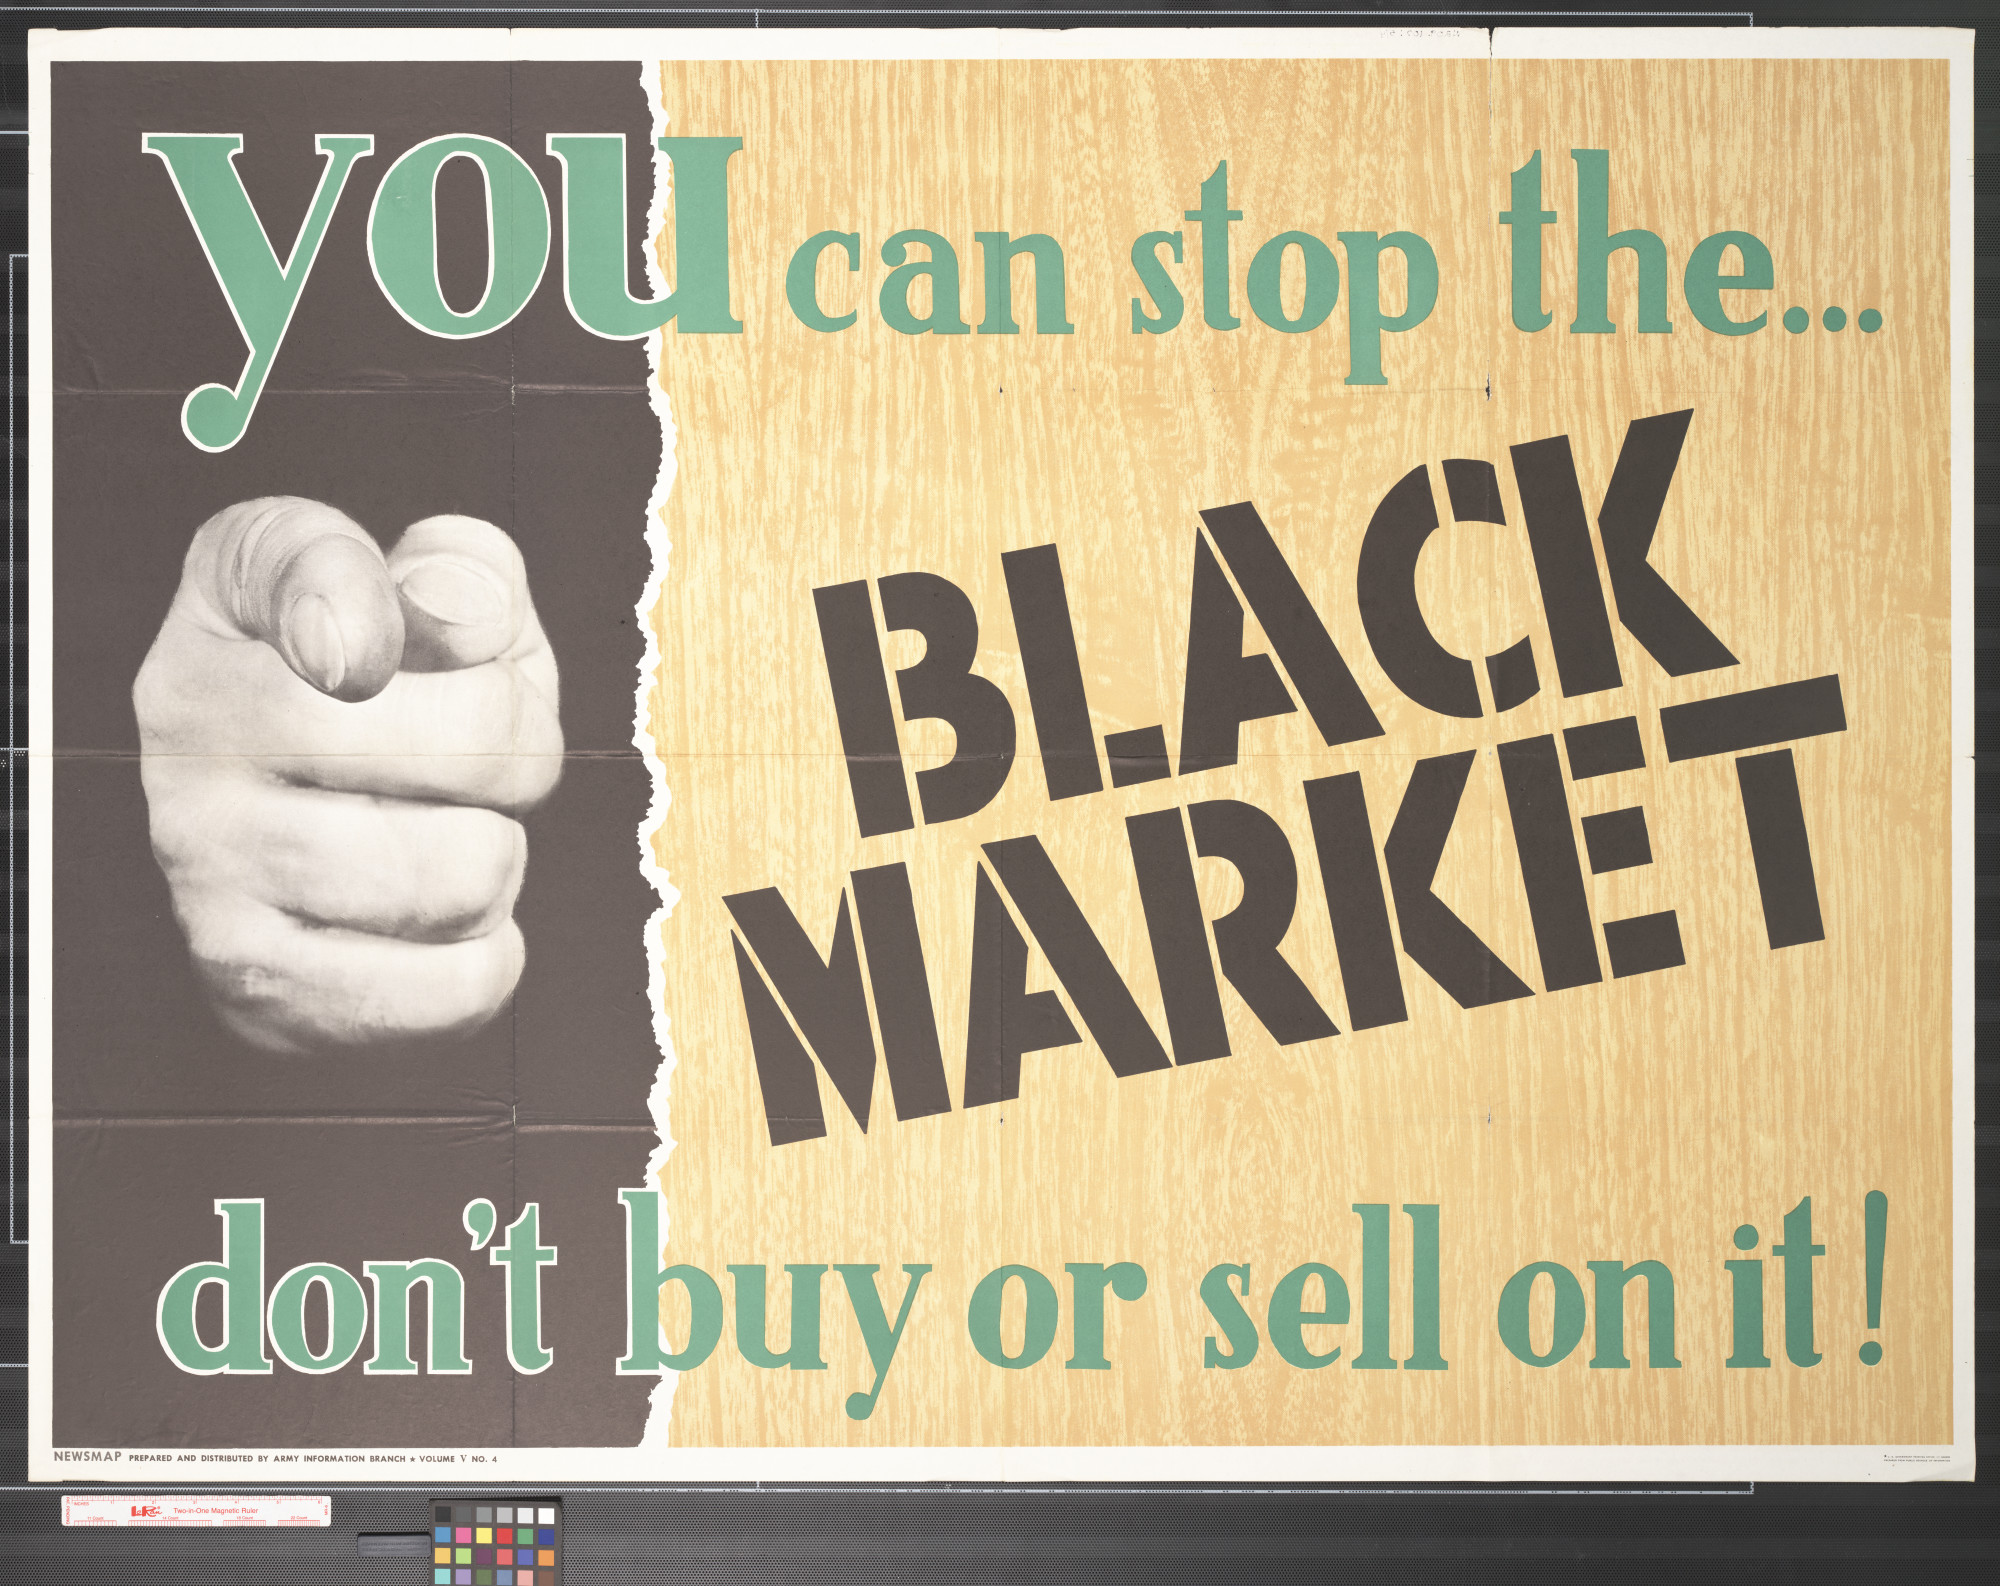 Newsmap : You can stop the--black market : don't buy or sell on it!                                                                                                      [Sequence #]: 1 of 1